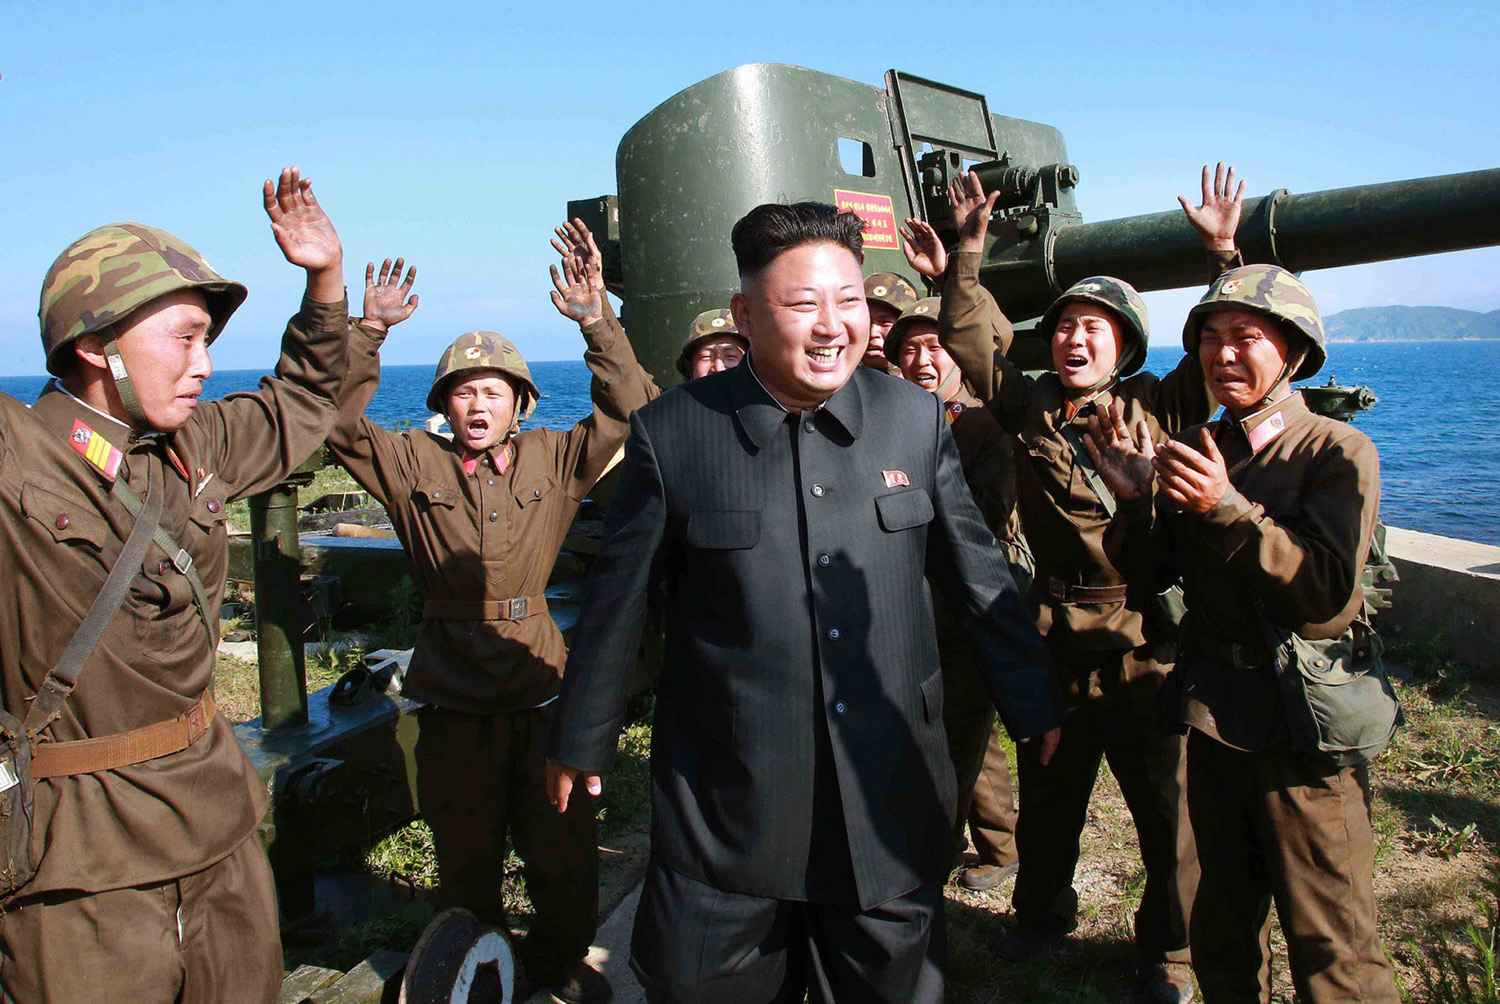 This undated picture released from North Korea's official Korean Central News Agency (KCNA) on July 7, 2014 shows North Korean leader Kim Jong-Un (C) being celebrated by soldiers as he inspects the defense detachment on Ung Islet, defending an outpost in the East Sea of Korea.